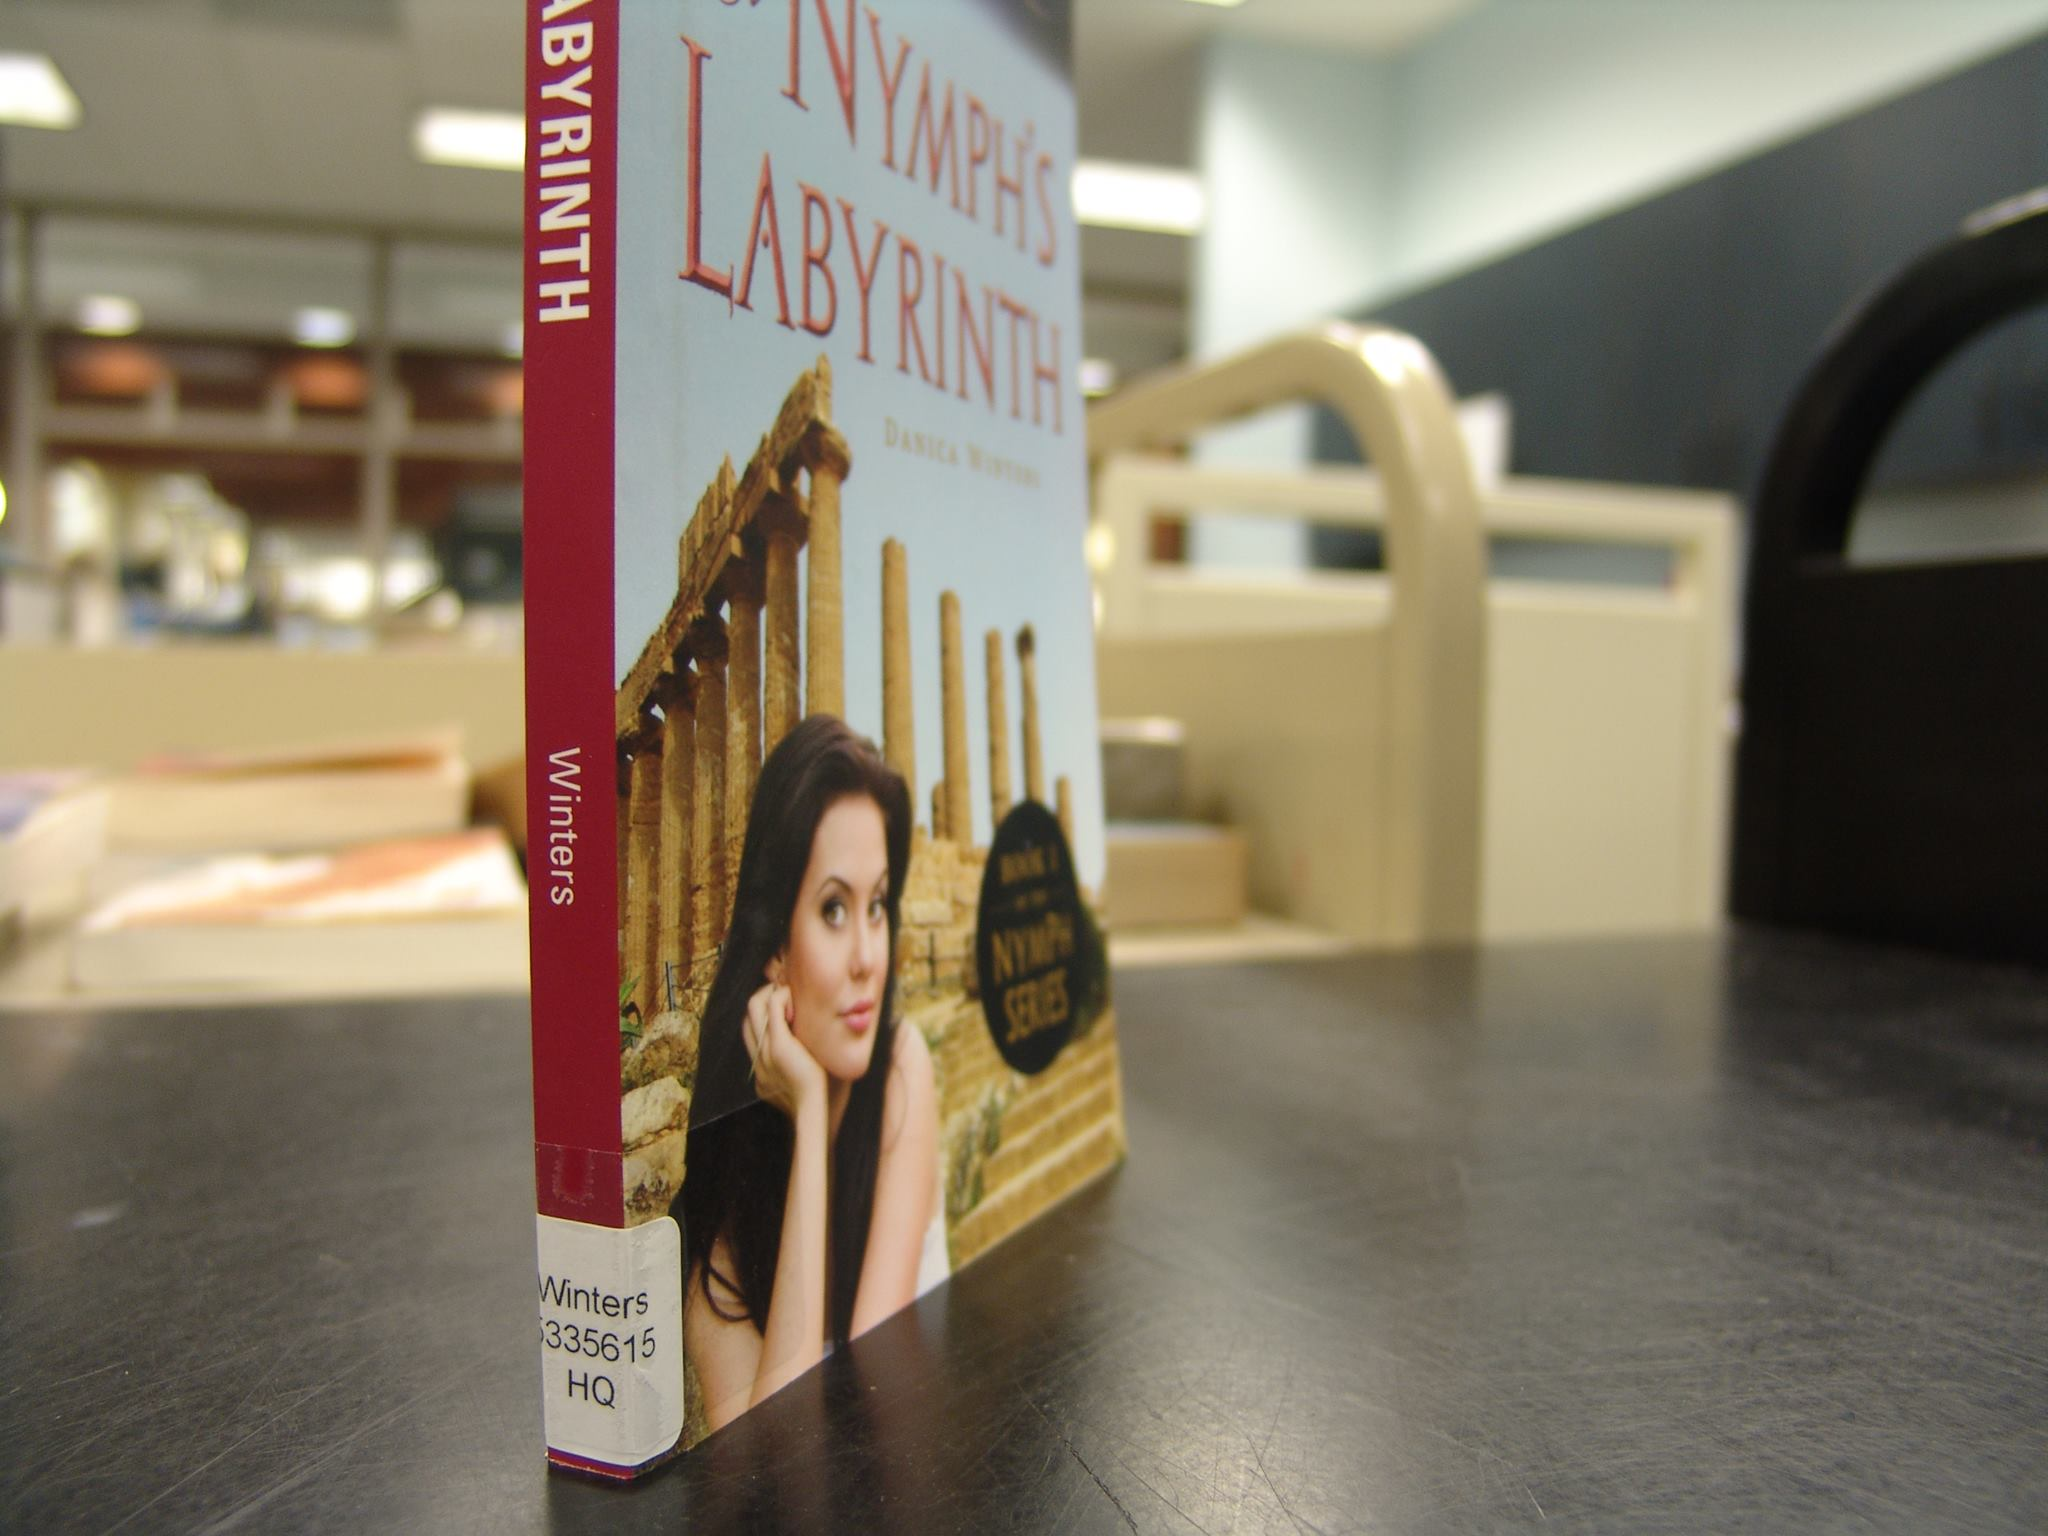 nymph's labryinth in library